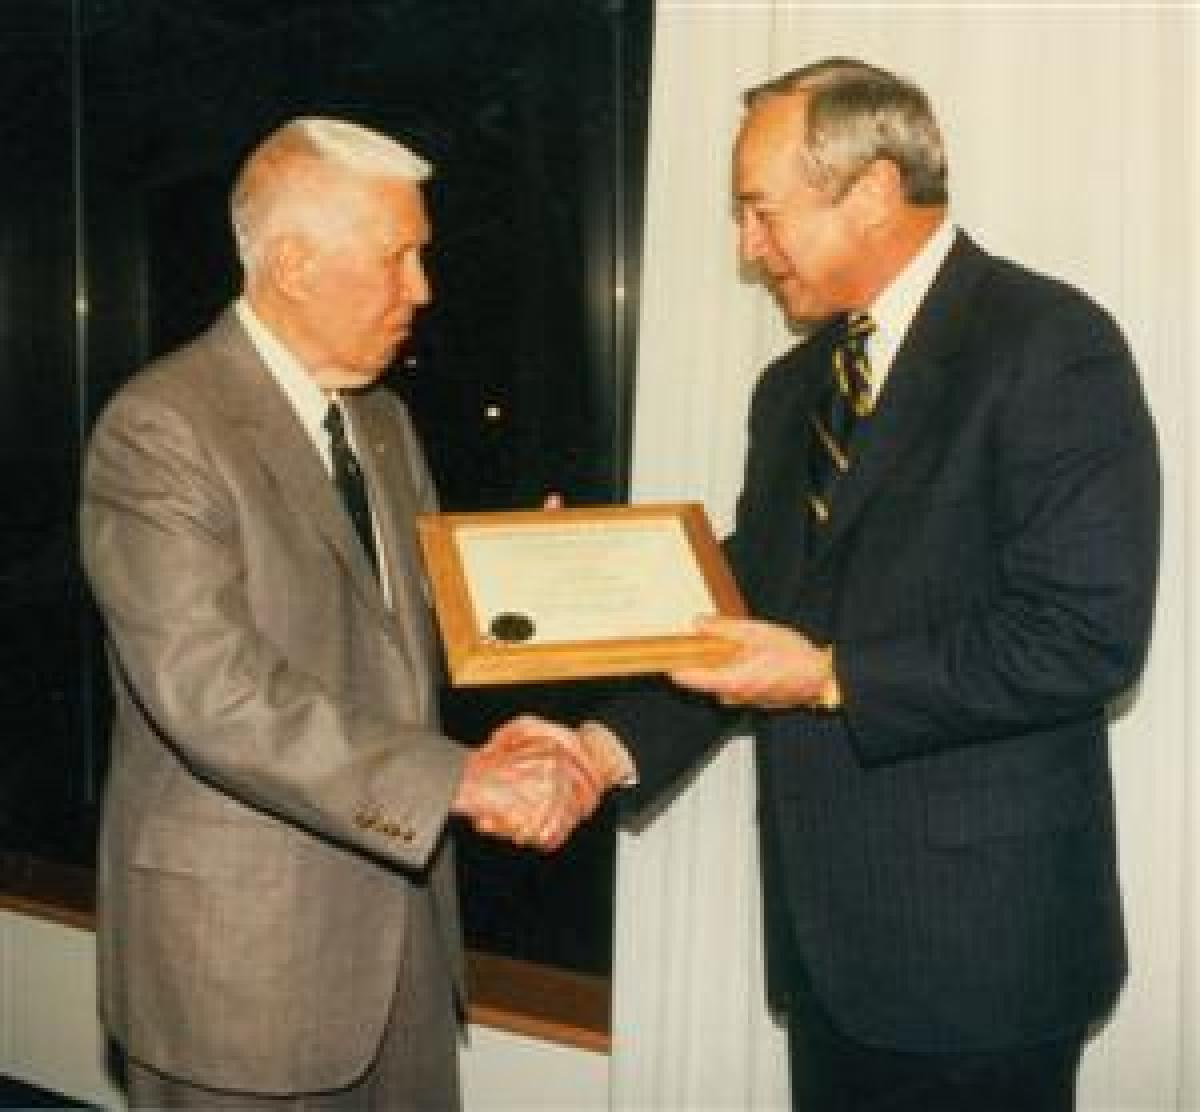 Secretary of the Navy John Dalton, right, congratulates Brast Thomas on becoming a Naval Institute Commodore in April 1996.